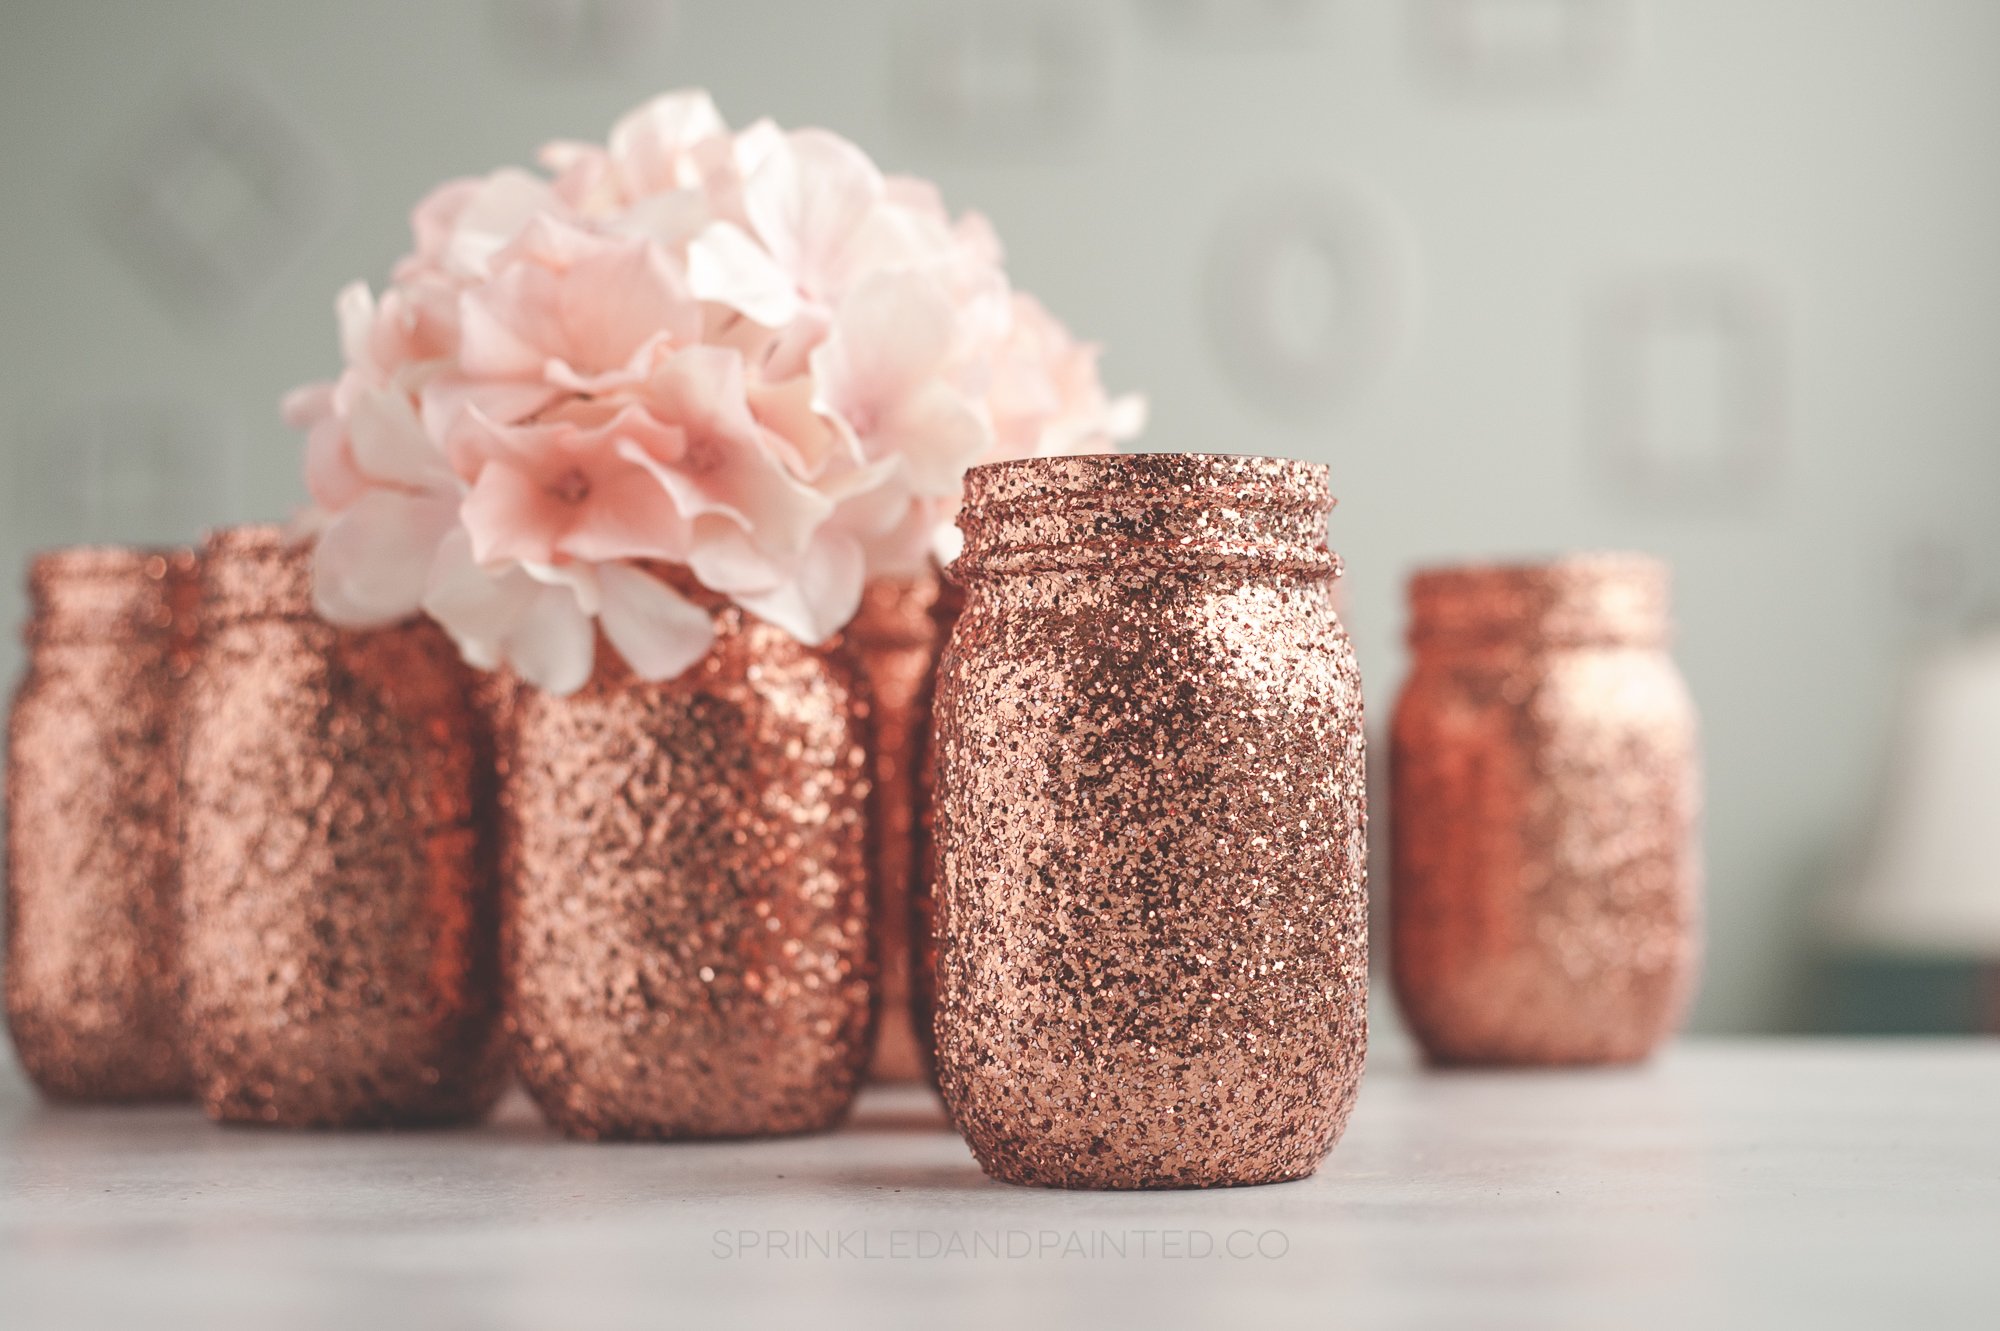 12 Rose Gold Glitter Vases Sprinkled And Painted At Ka Styles Co